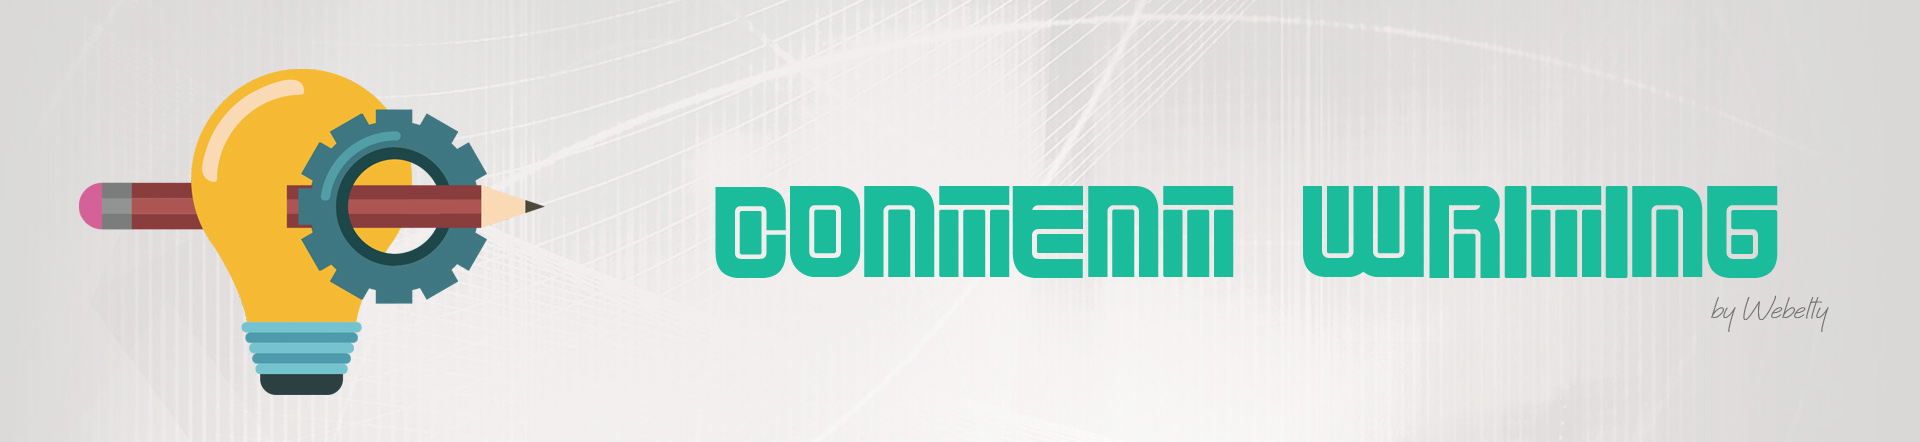 content writing service india